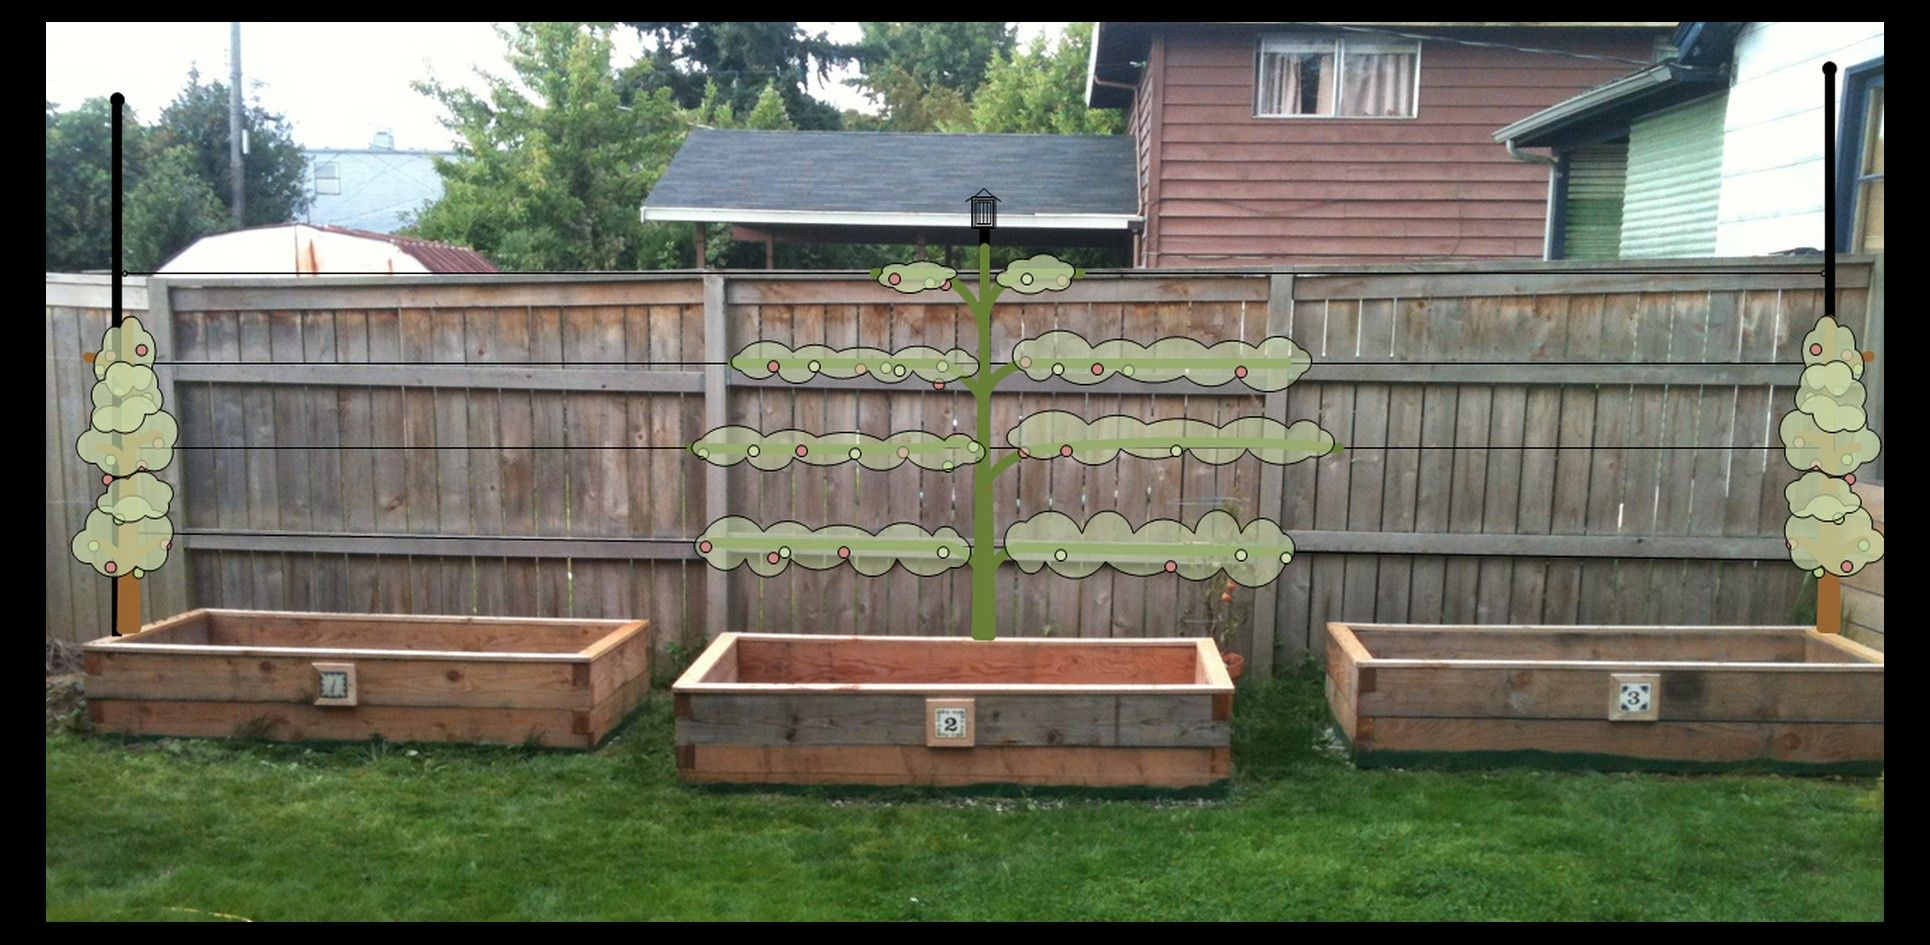 garden-boxes | RaisedBeds; Vertical Gardening or Boxed Planters ...